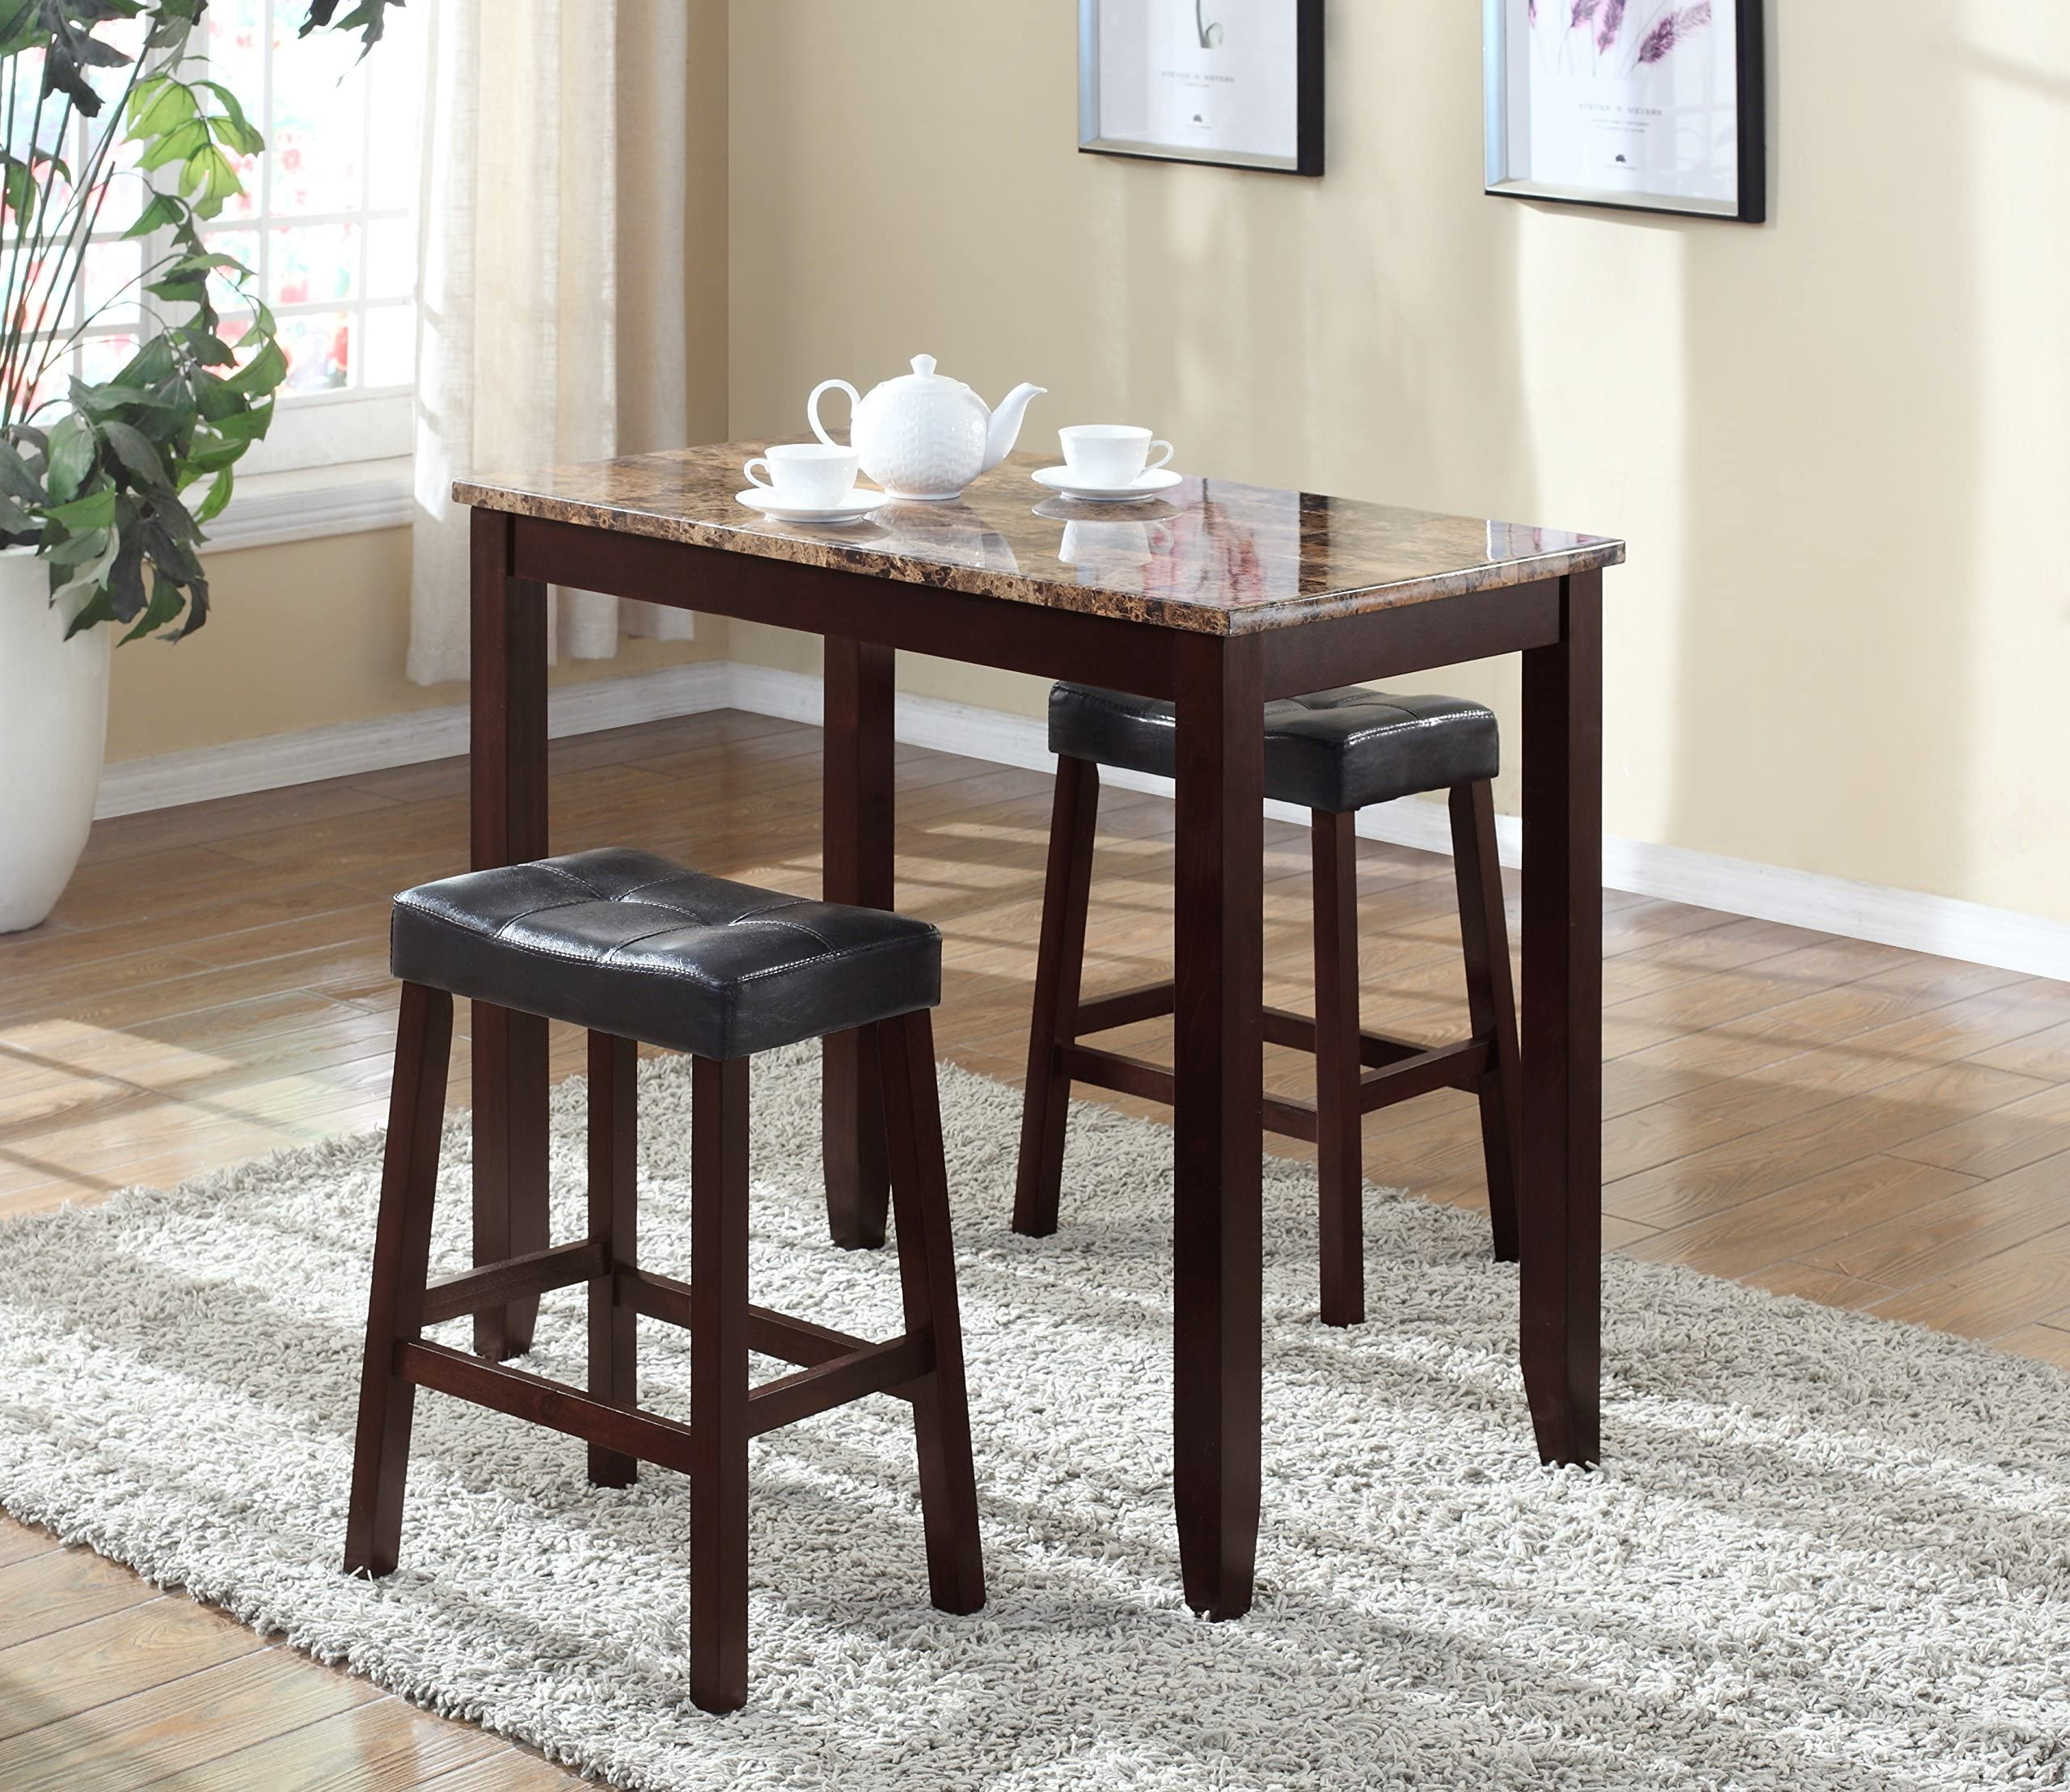 Roundhill Furniture 3-Piece Counter Height Glossy Print Marble Breakfast Table with Stools  sc 1 st  Amazon.com & Table \u0026 Chair Sets | Amazon.com